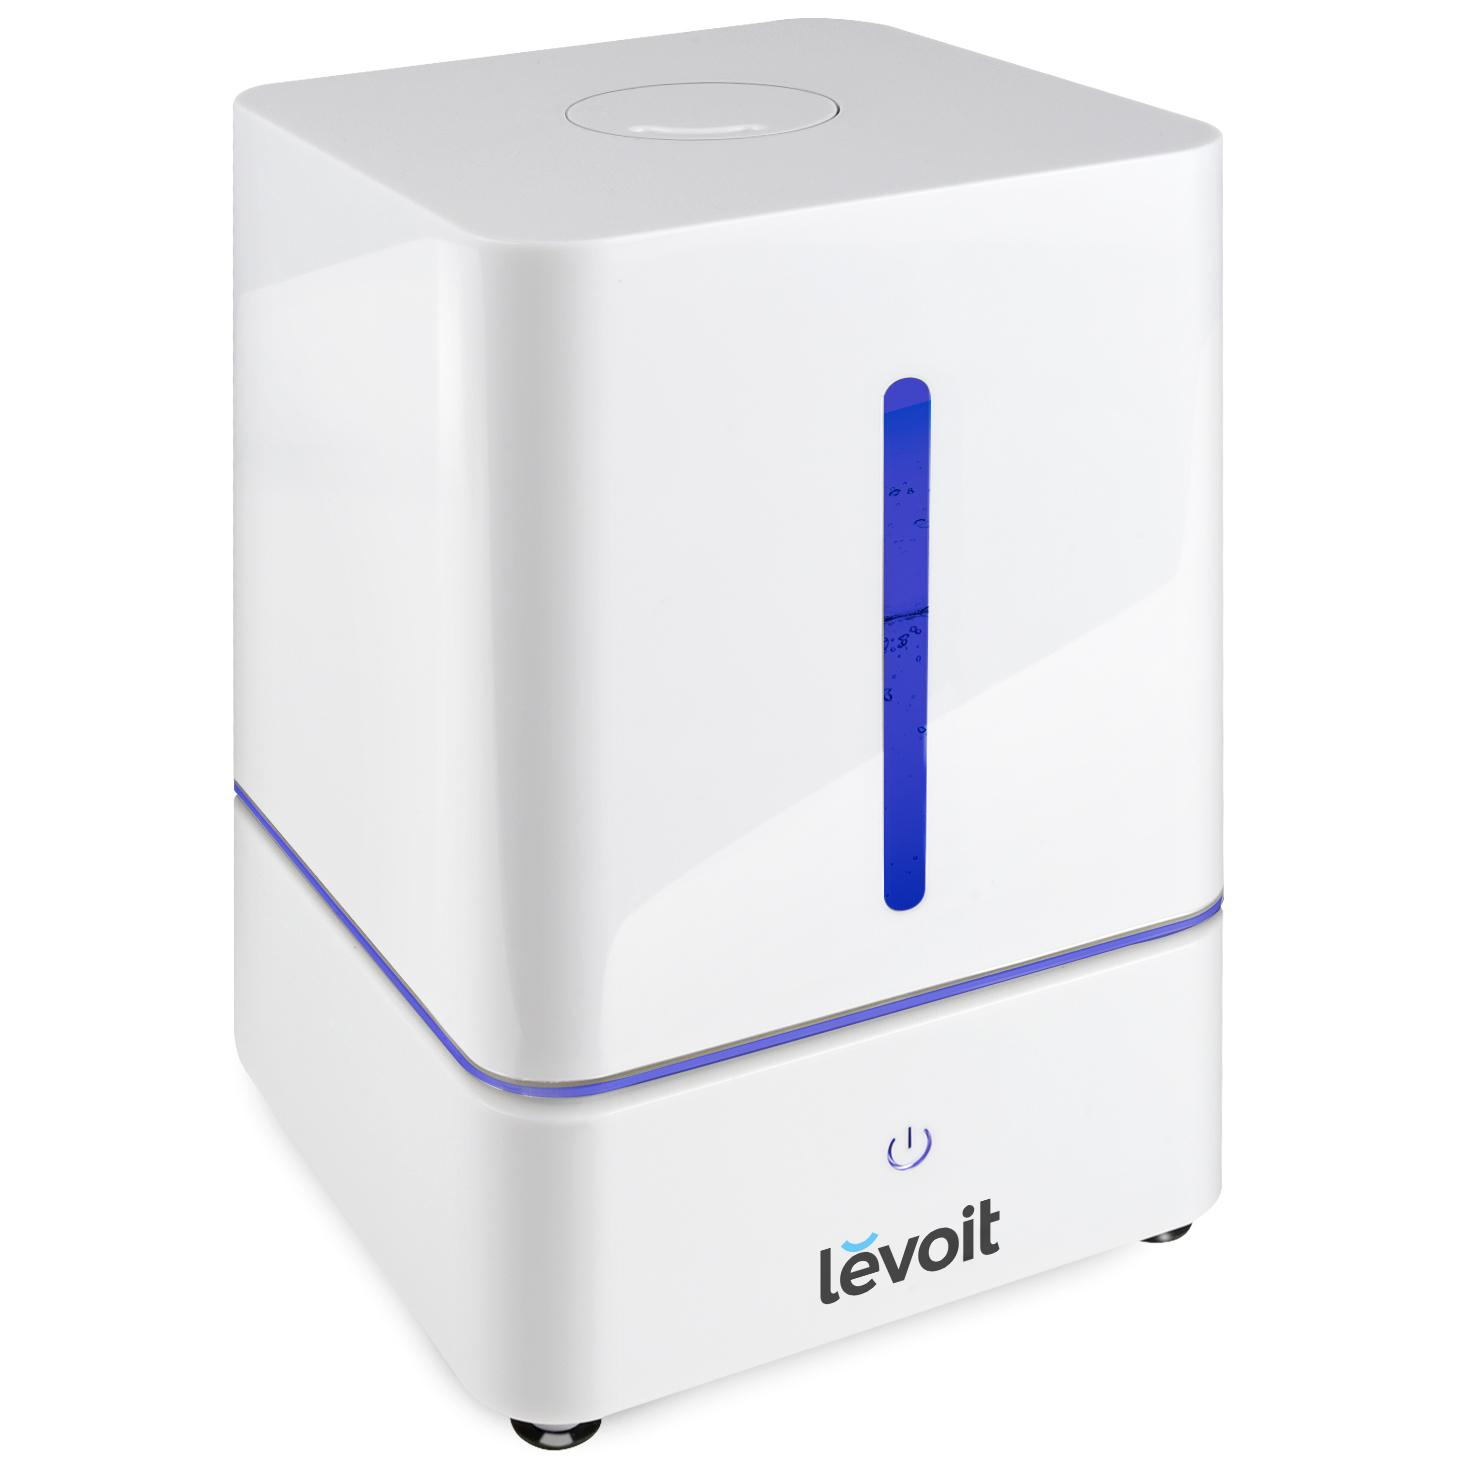 Levoit Humidifiers Vaporizer Cool Mist Air Ultrasonic Bedroom Humidifier With 4l